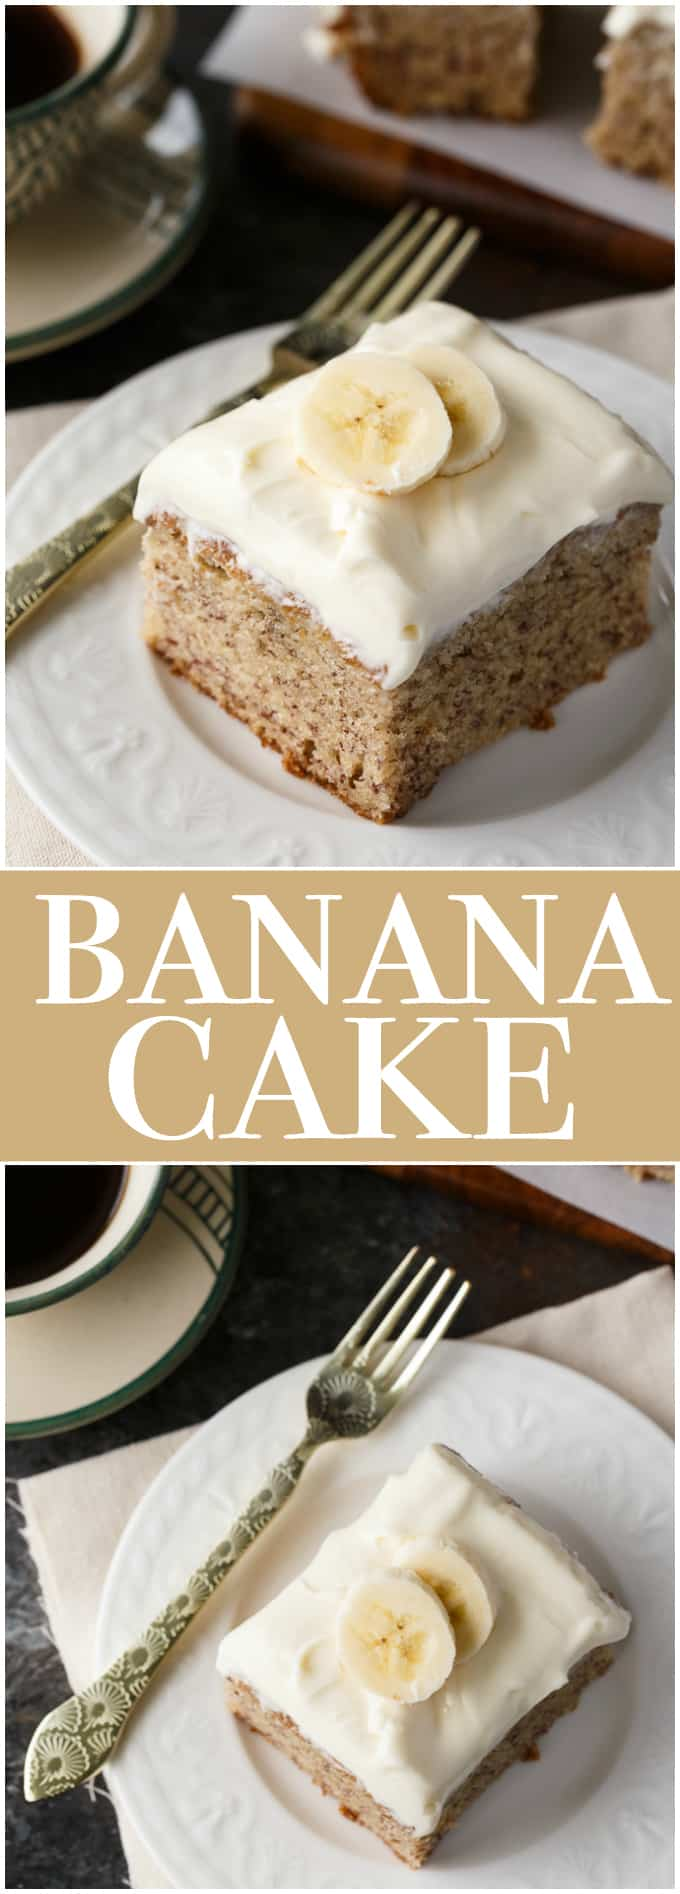 Banana Cake - An amazingly moist cake covered in cream cheese frosting. A perfect use for brown bananas!